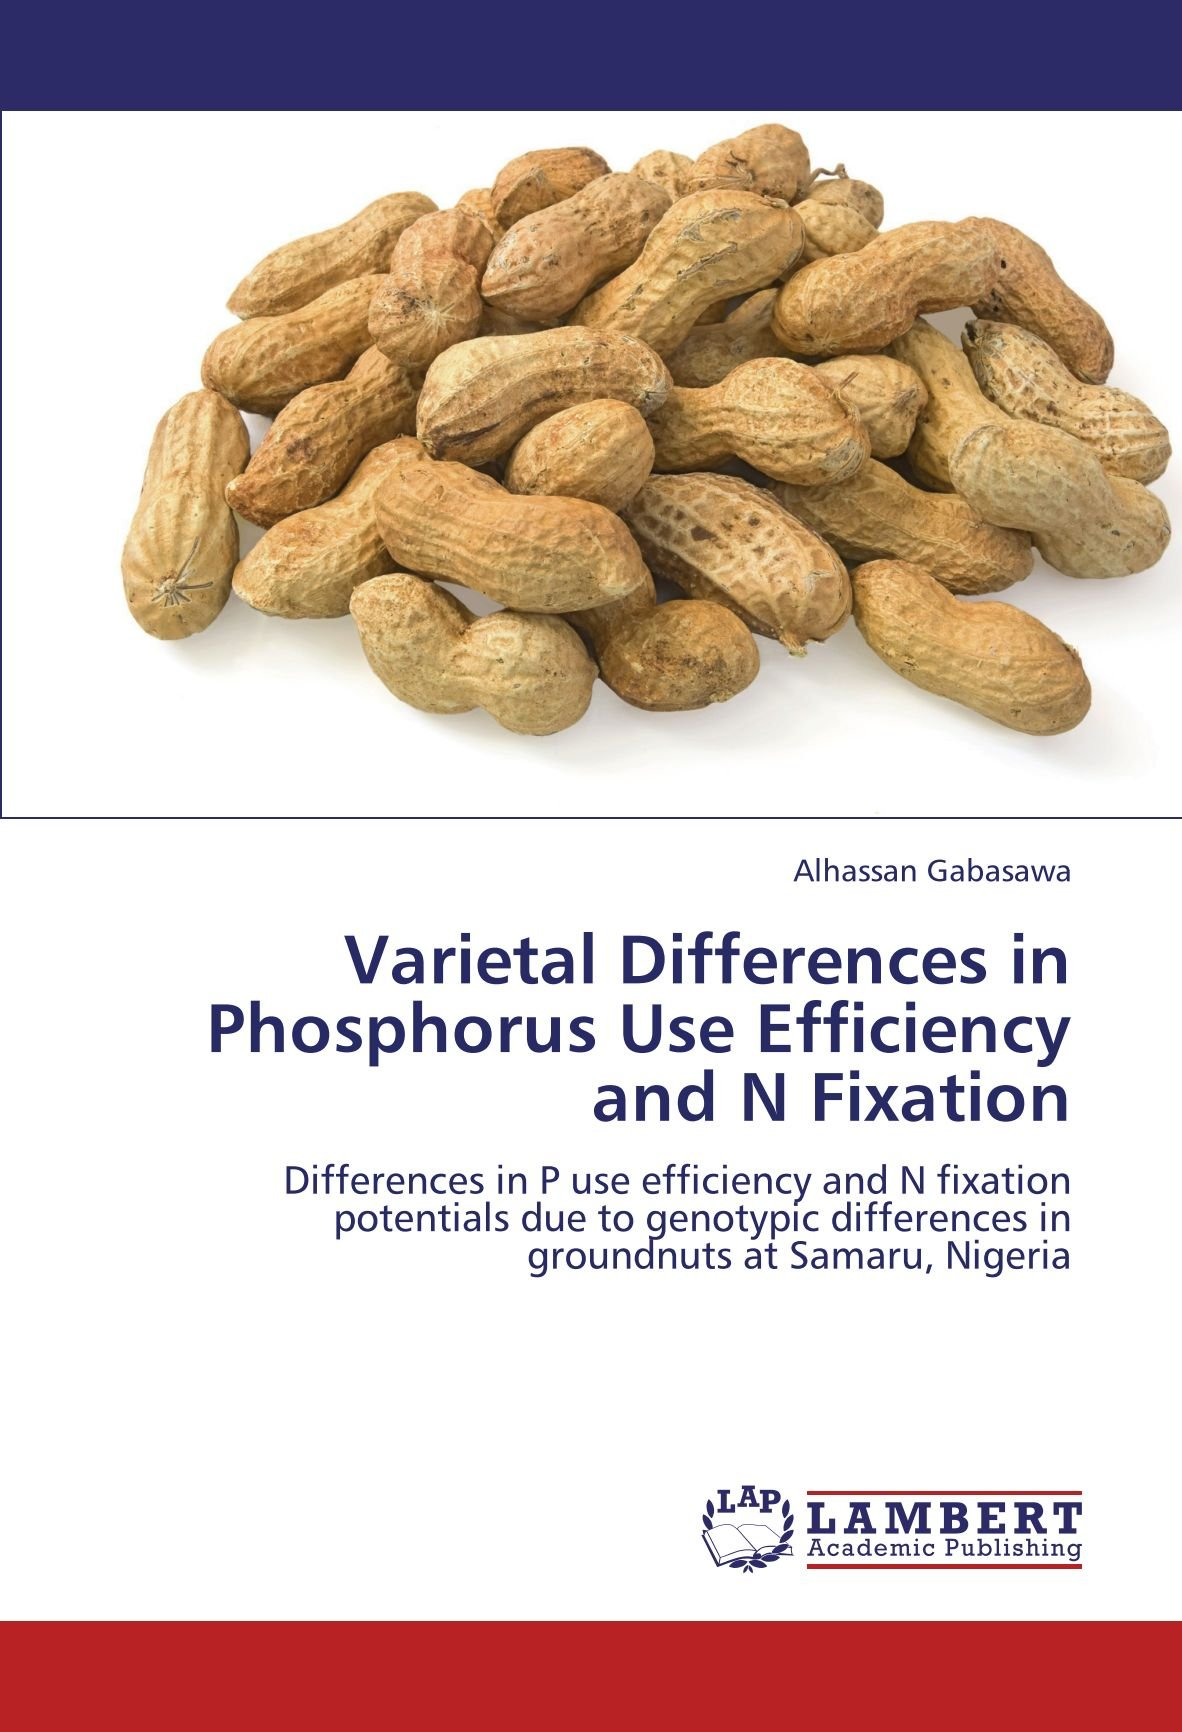 Download Varietal Differences in Phosphorus Use Efficiency and N Fixation: Differences in P use efficiency and N fixation potentials due to genotypic differences in groundnuts at Samaru, Nigeria pdf epub